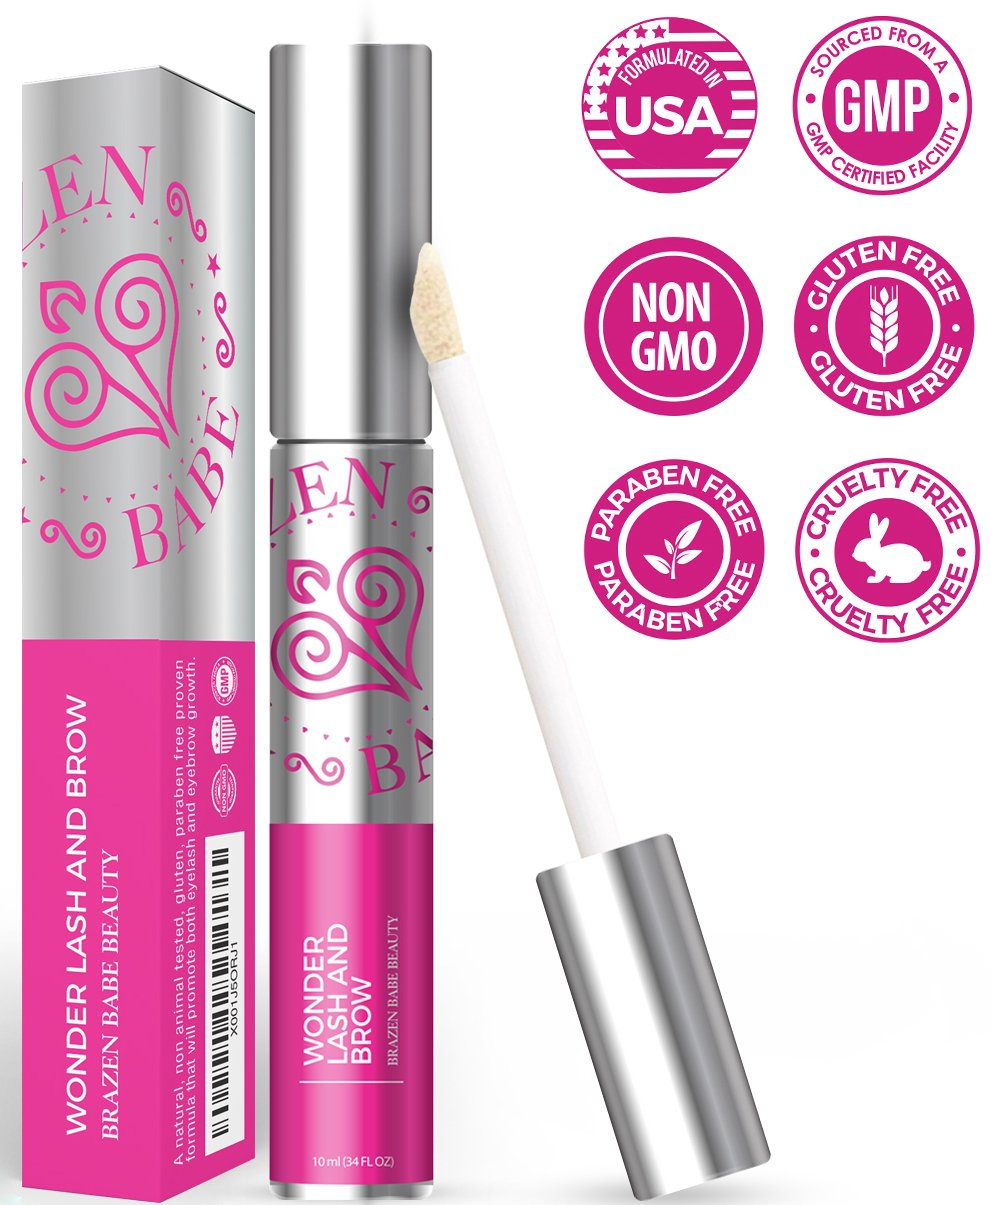 Powerful Clinically Proven Rapid Eyelash Serum Formula | Wonder Lash & Brow Quickly Grows Your Own Lush, Long, Robust Lashes & Eyebrows, Guaranteed, w/Apple Stem Cells, Coconut Castor Oil & Pro Vit E